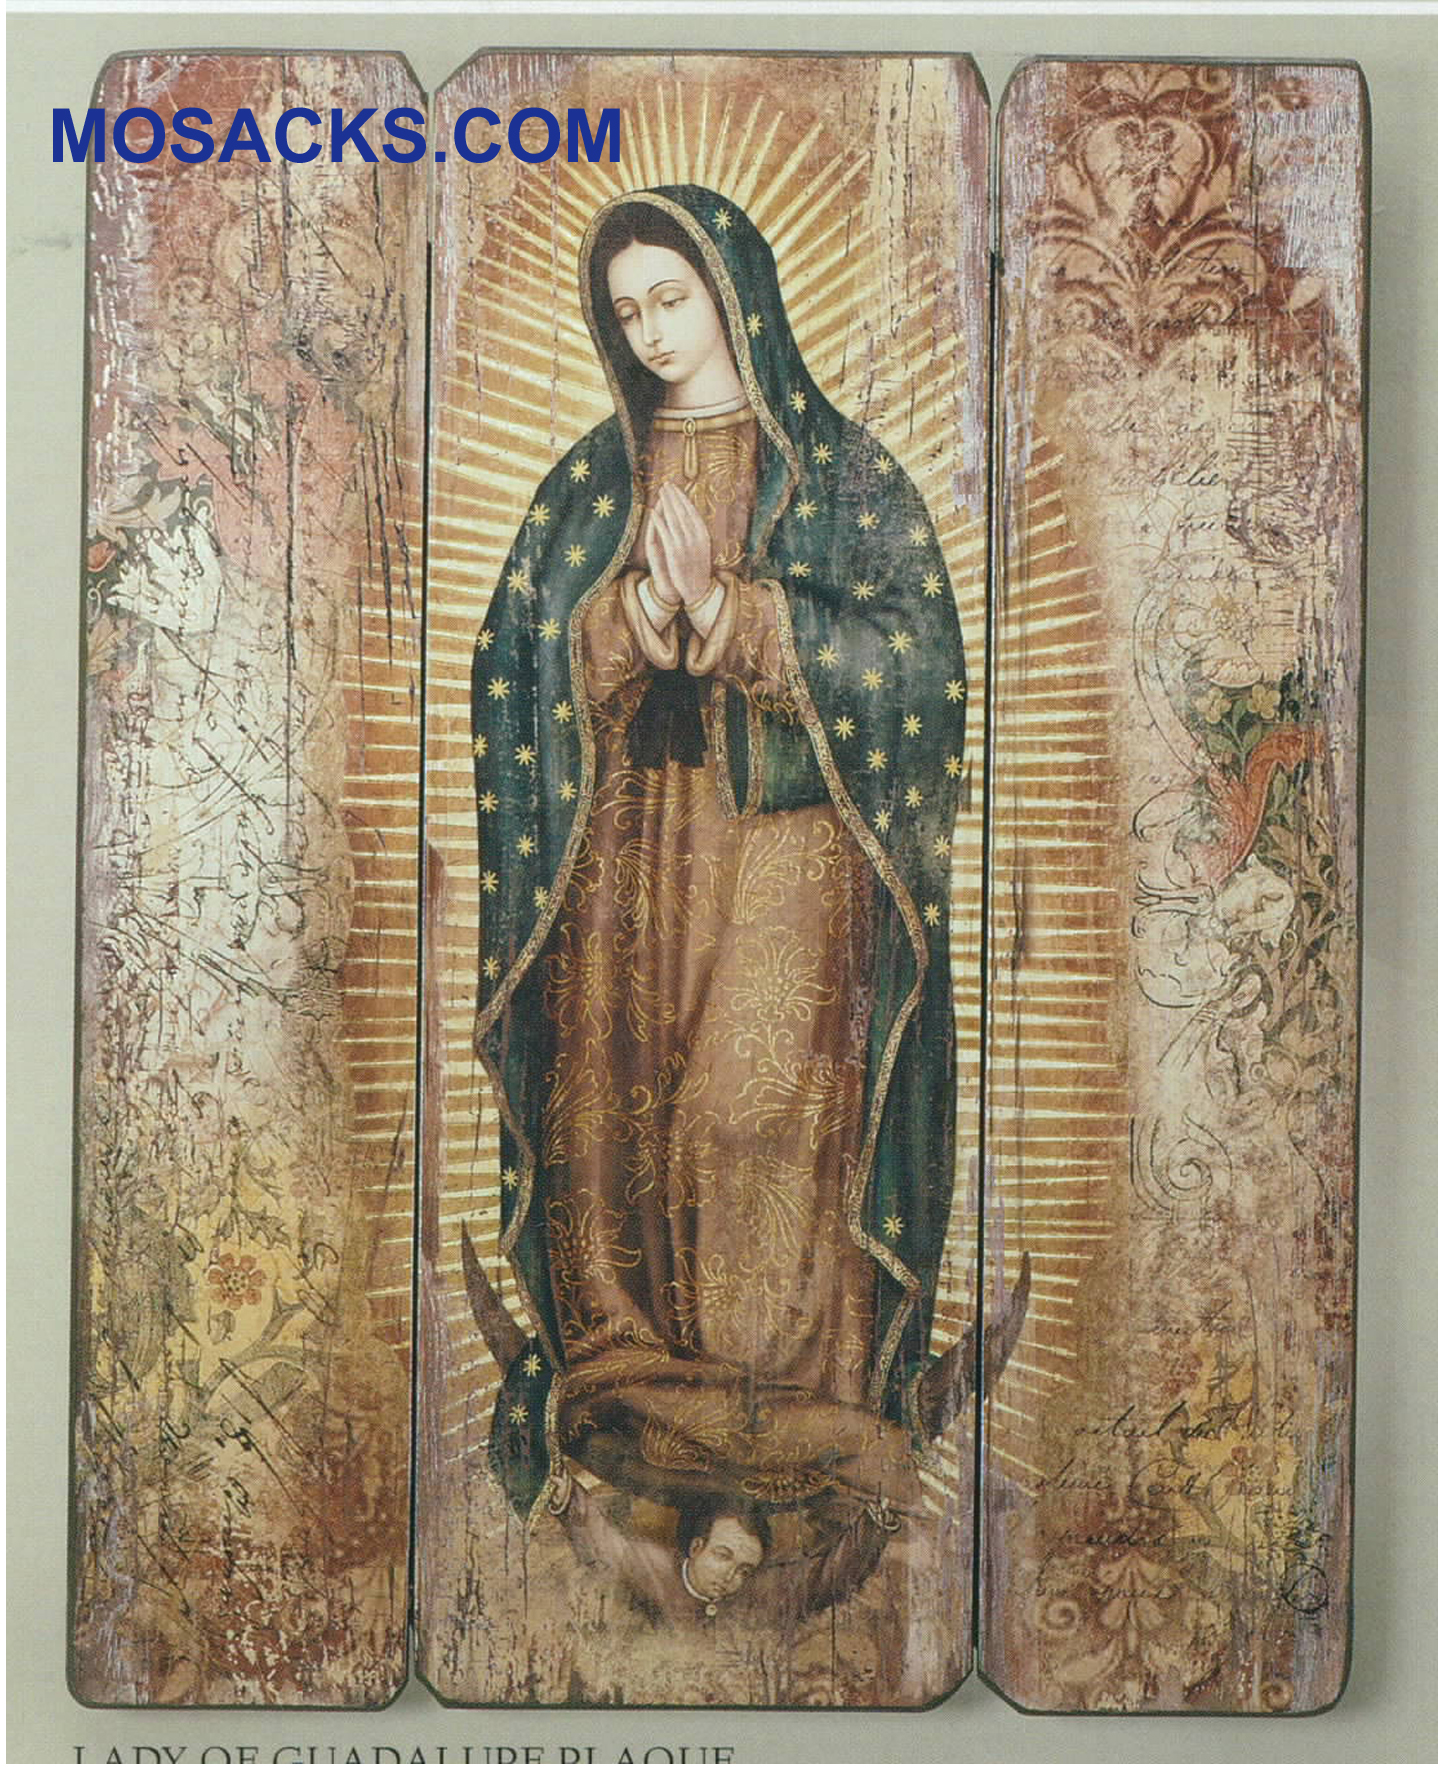 Joseph's Studio Decorative Panel Our Lady Of Guadalupe 15 Inch 20-66421